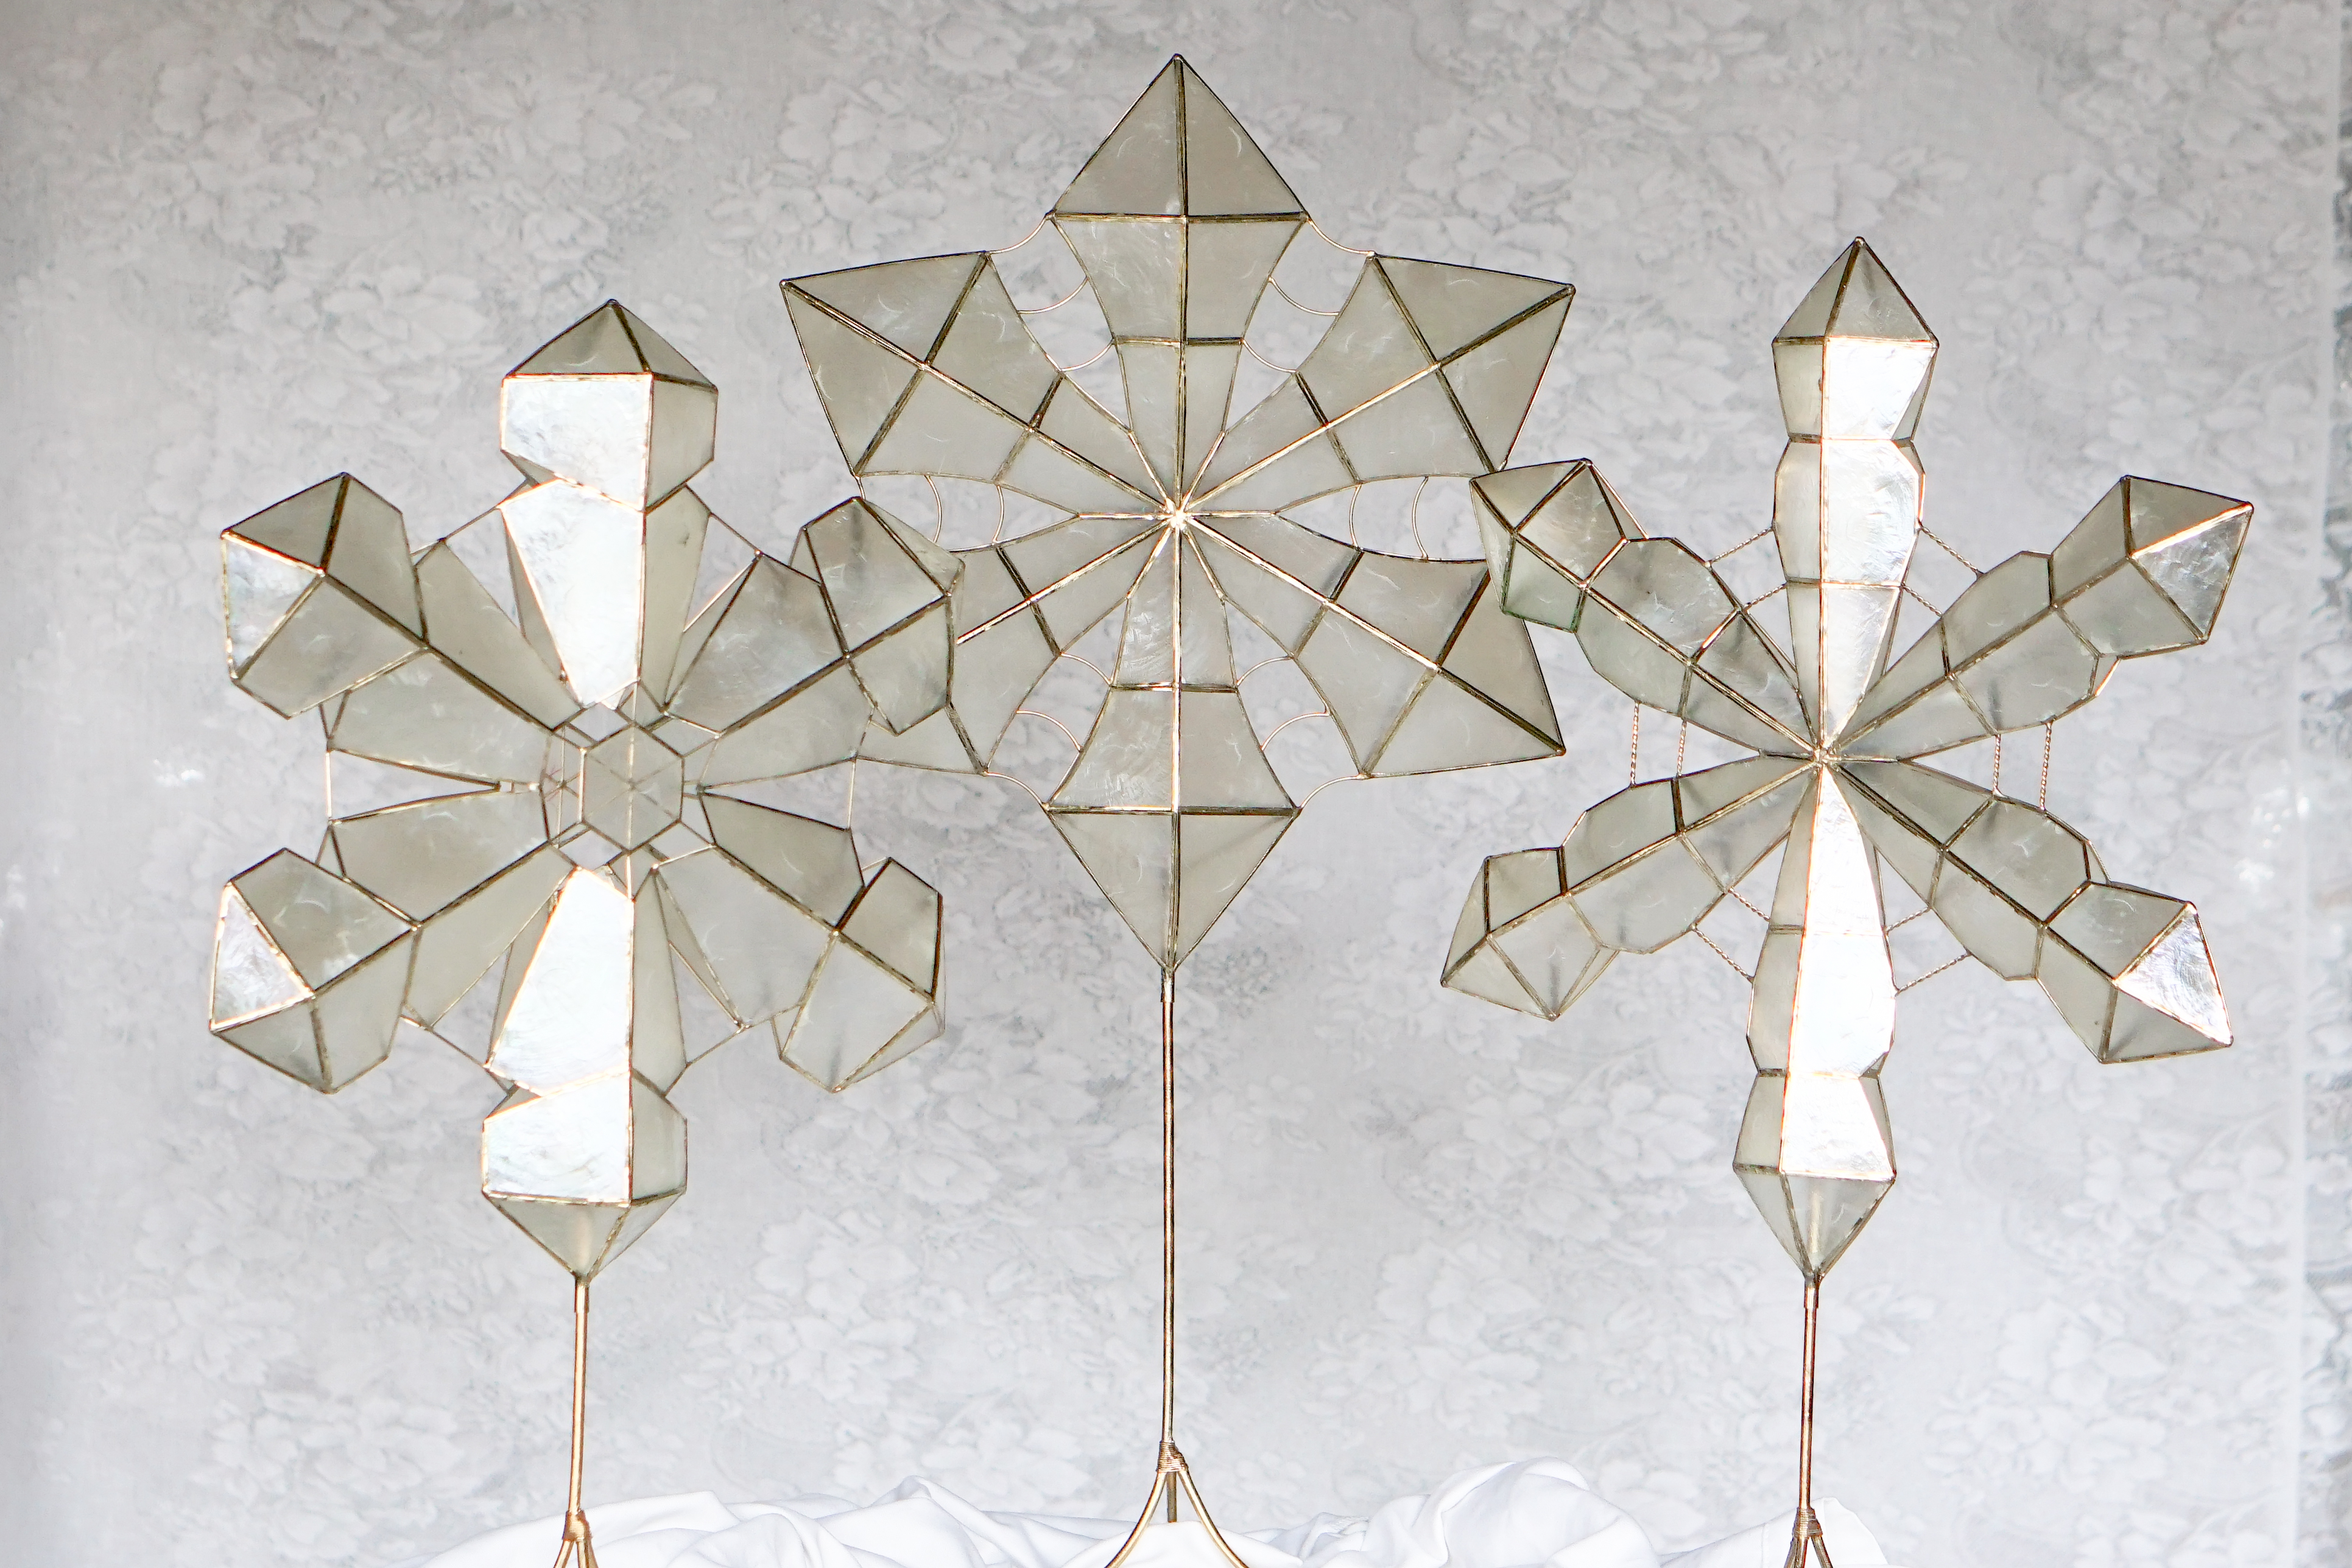 Northshine Lightings and Decors Manufacturing, Home Accessories, Gifts, Festive and Home Decor, Capiz, Capiz Shells, Wood